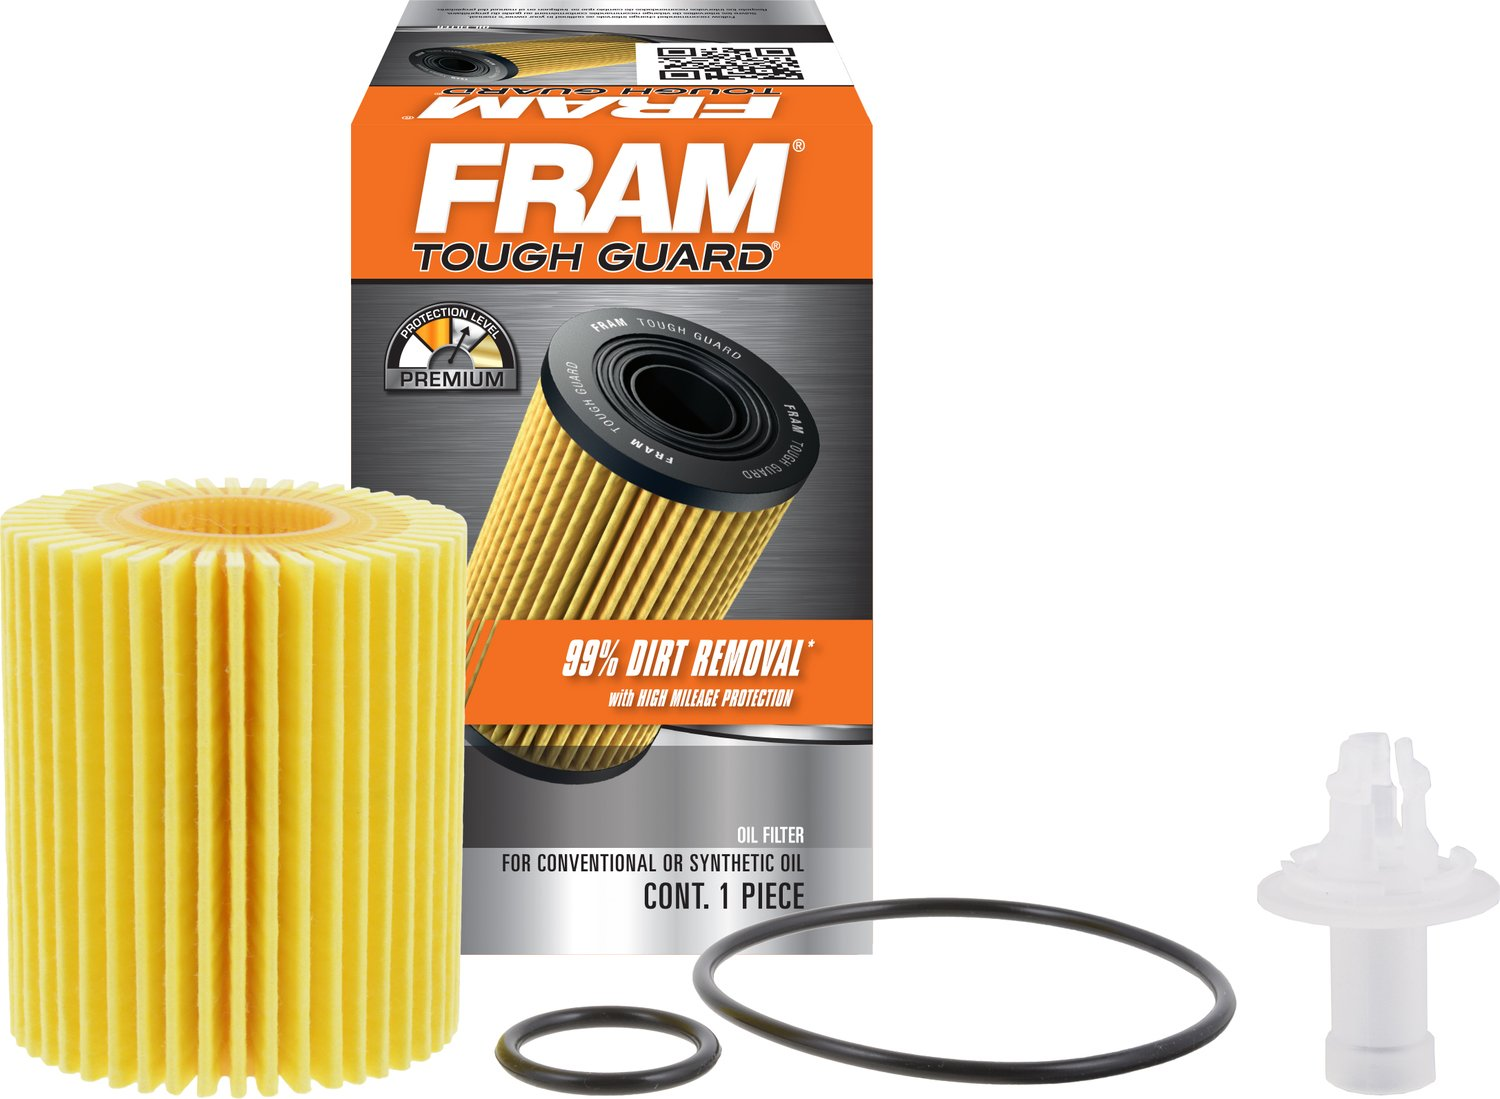 FRAM TG10158 Tough Guard Full-Flow Cartridge Oil Filter product image